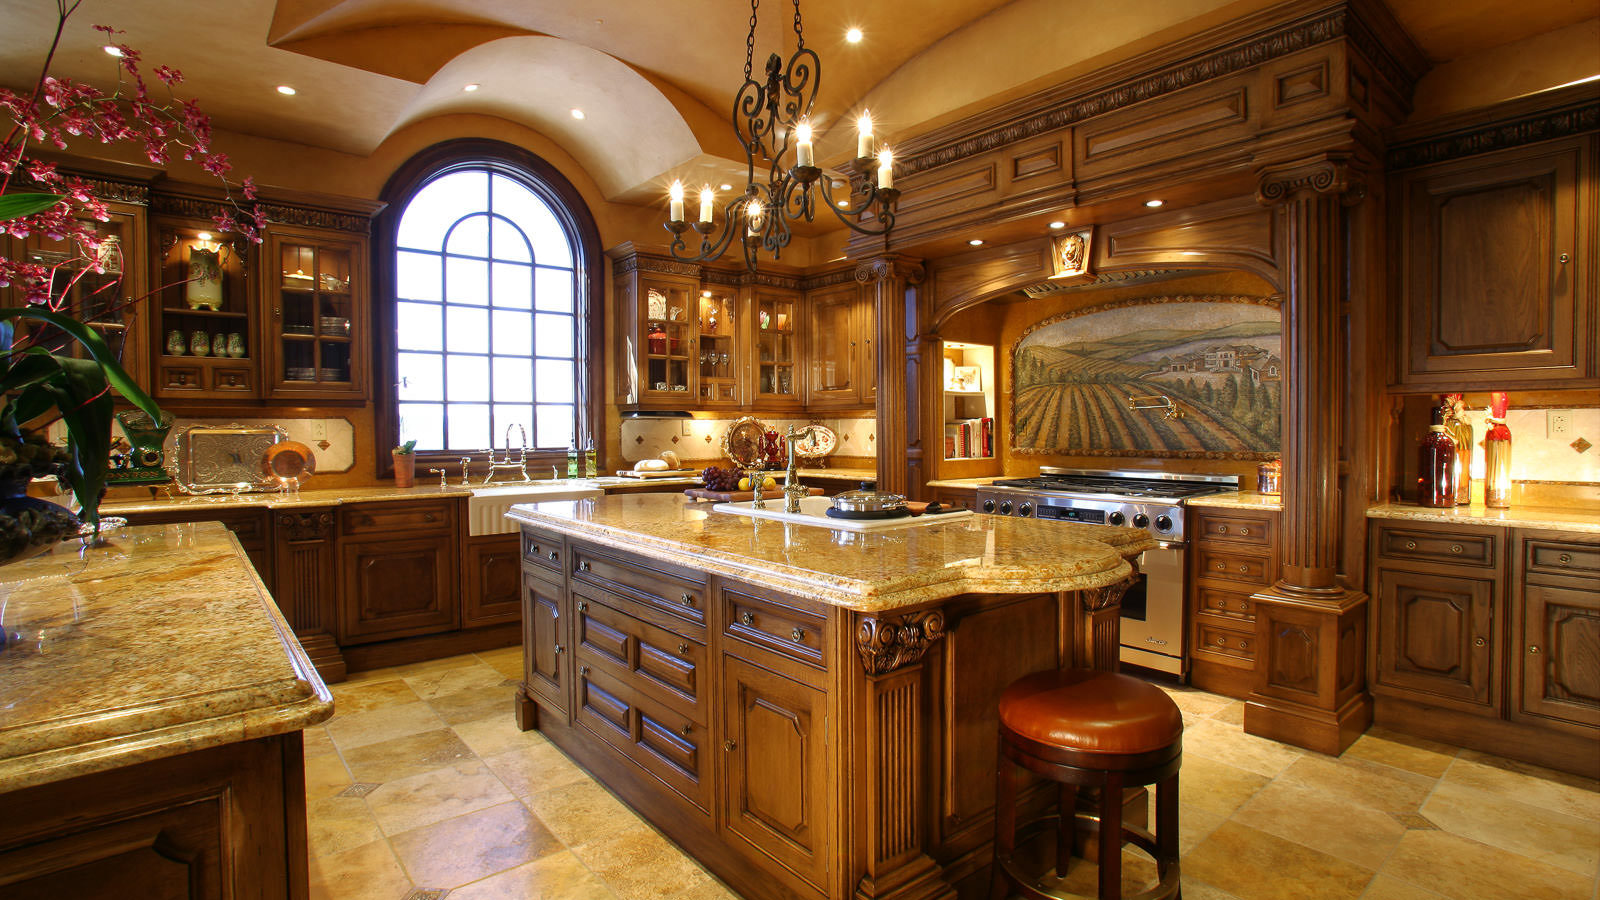 Luxury Kitchen Designs Decorating Ideas Design Trends - Luxury kitchen ideas